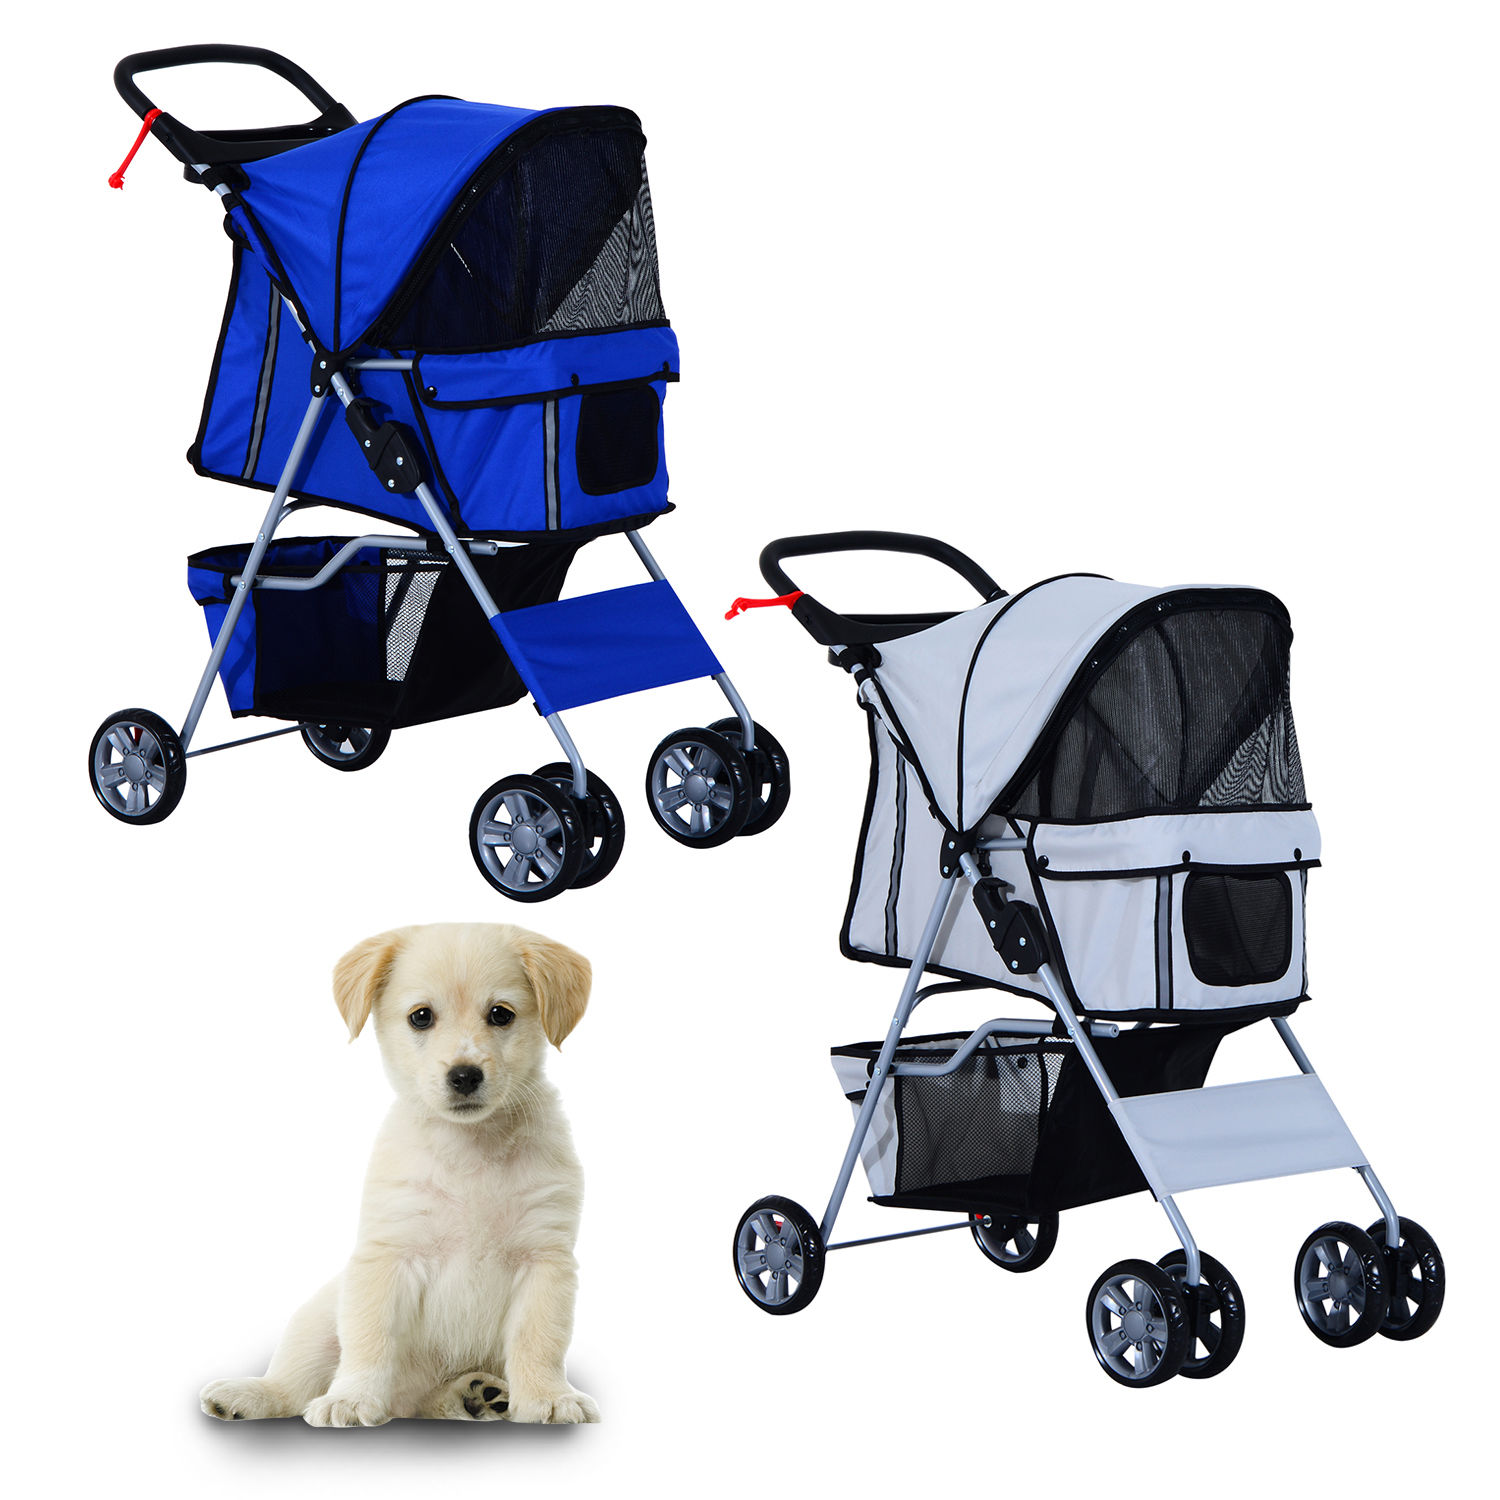 3 Wheel Prams Argos Dog Strollers Argos